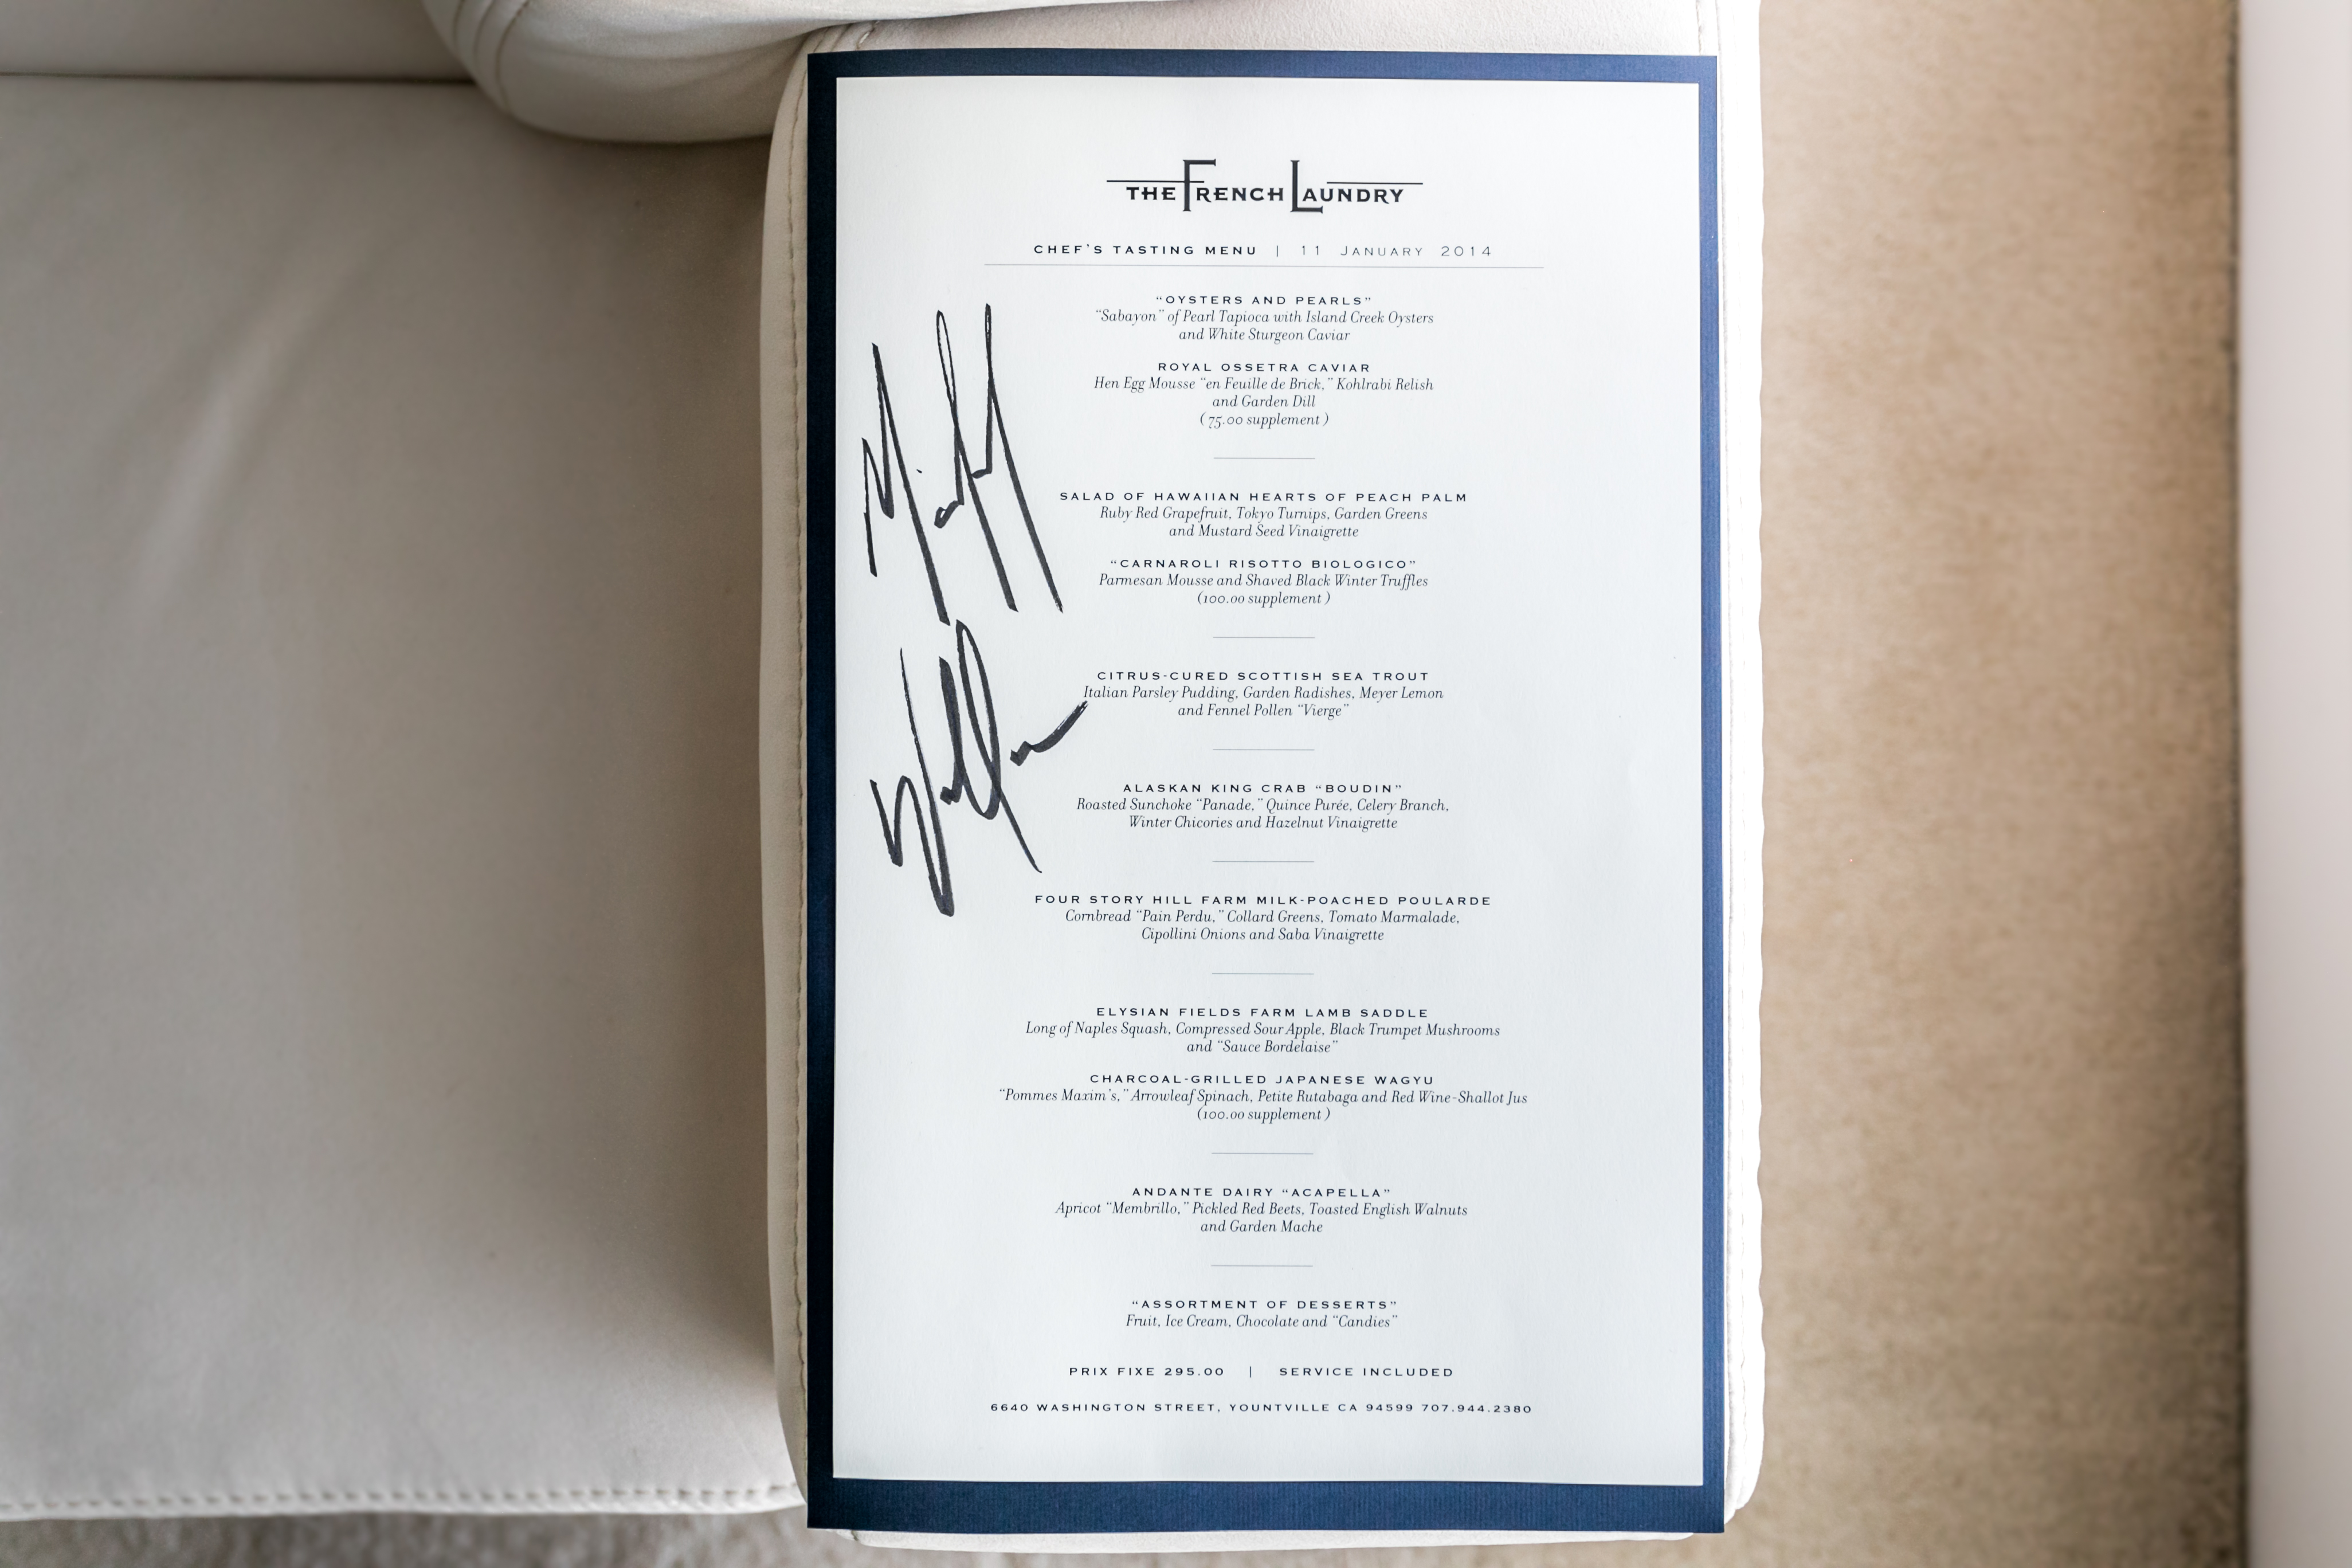 Filethe French Laundry Menu Signed By Chef Michael Wallace